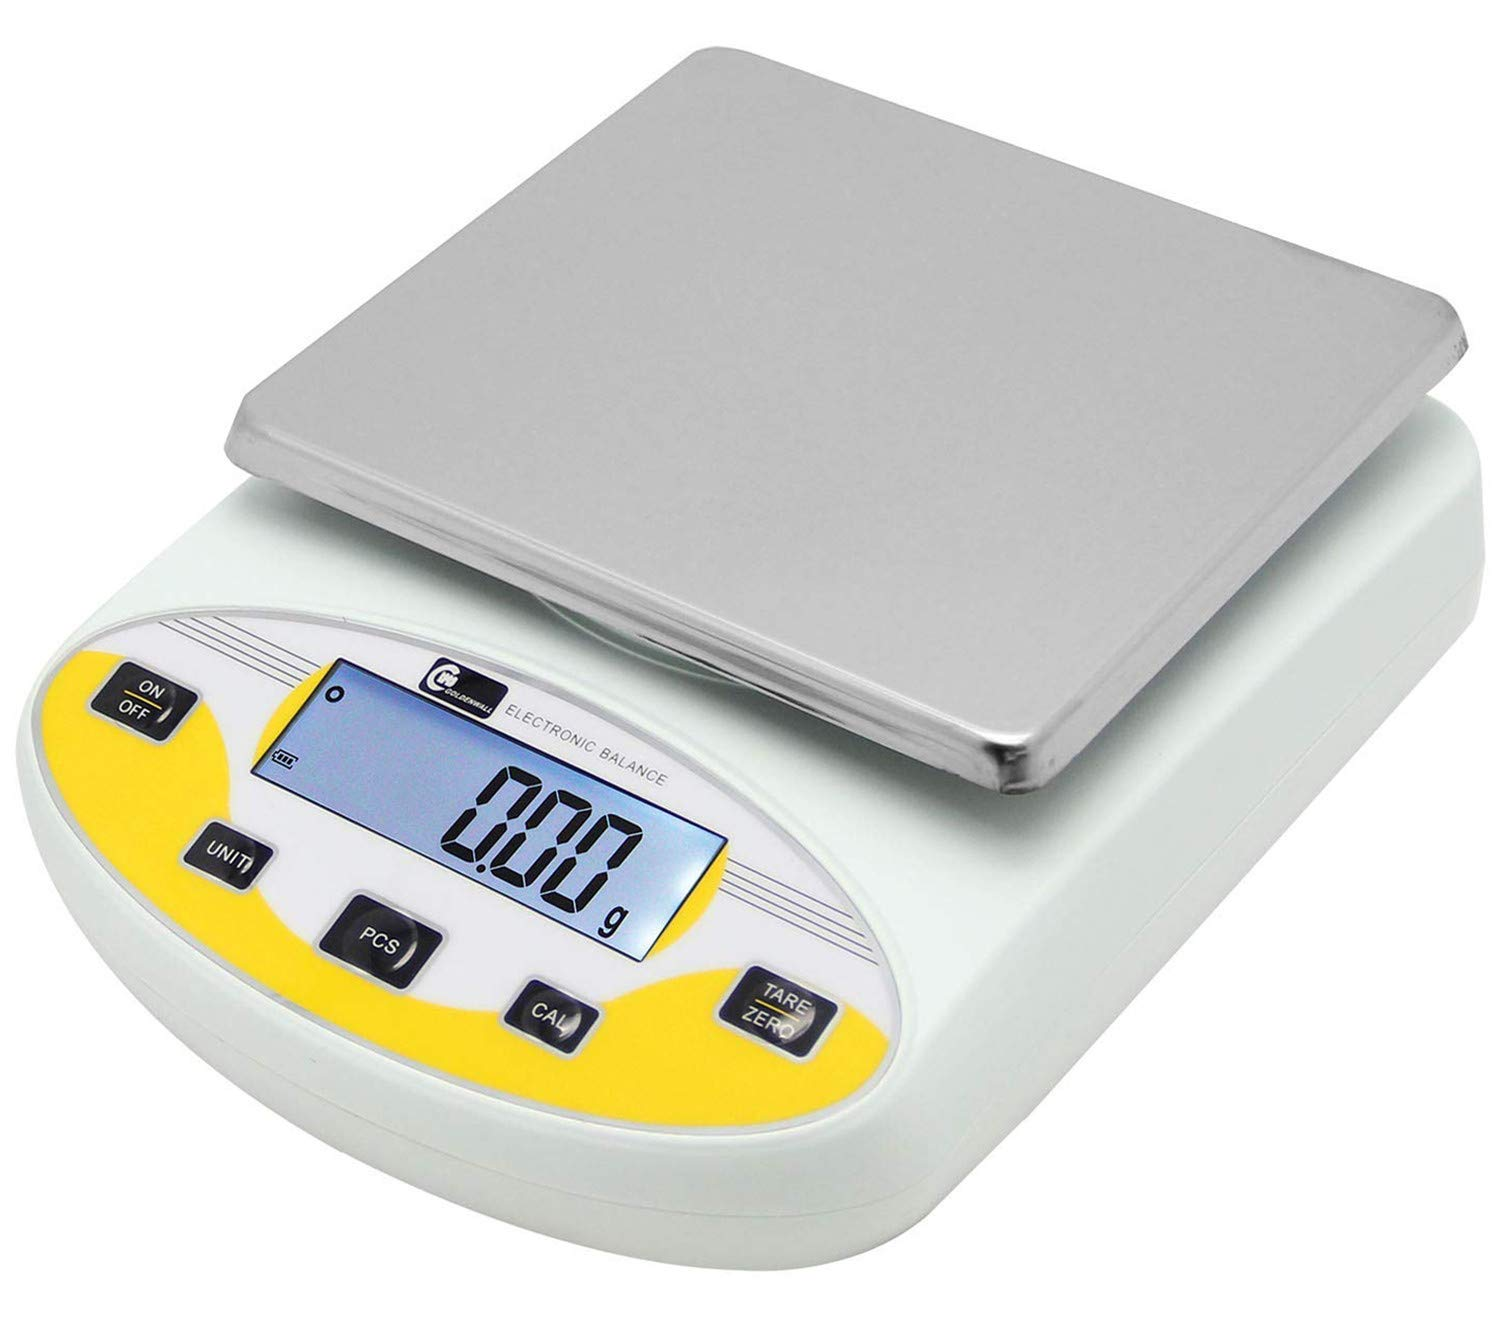 CGOLDENWALL Lab Scale 500gx0.01g Precision Analytical Balance Digital Precision Scale Laboratory Weighing Electronic Balance Jewelry Scales Gold Balance Kitchen Scales Calibrated (500g, 0.01g)